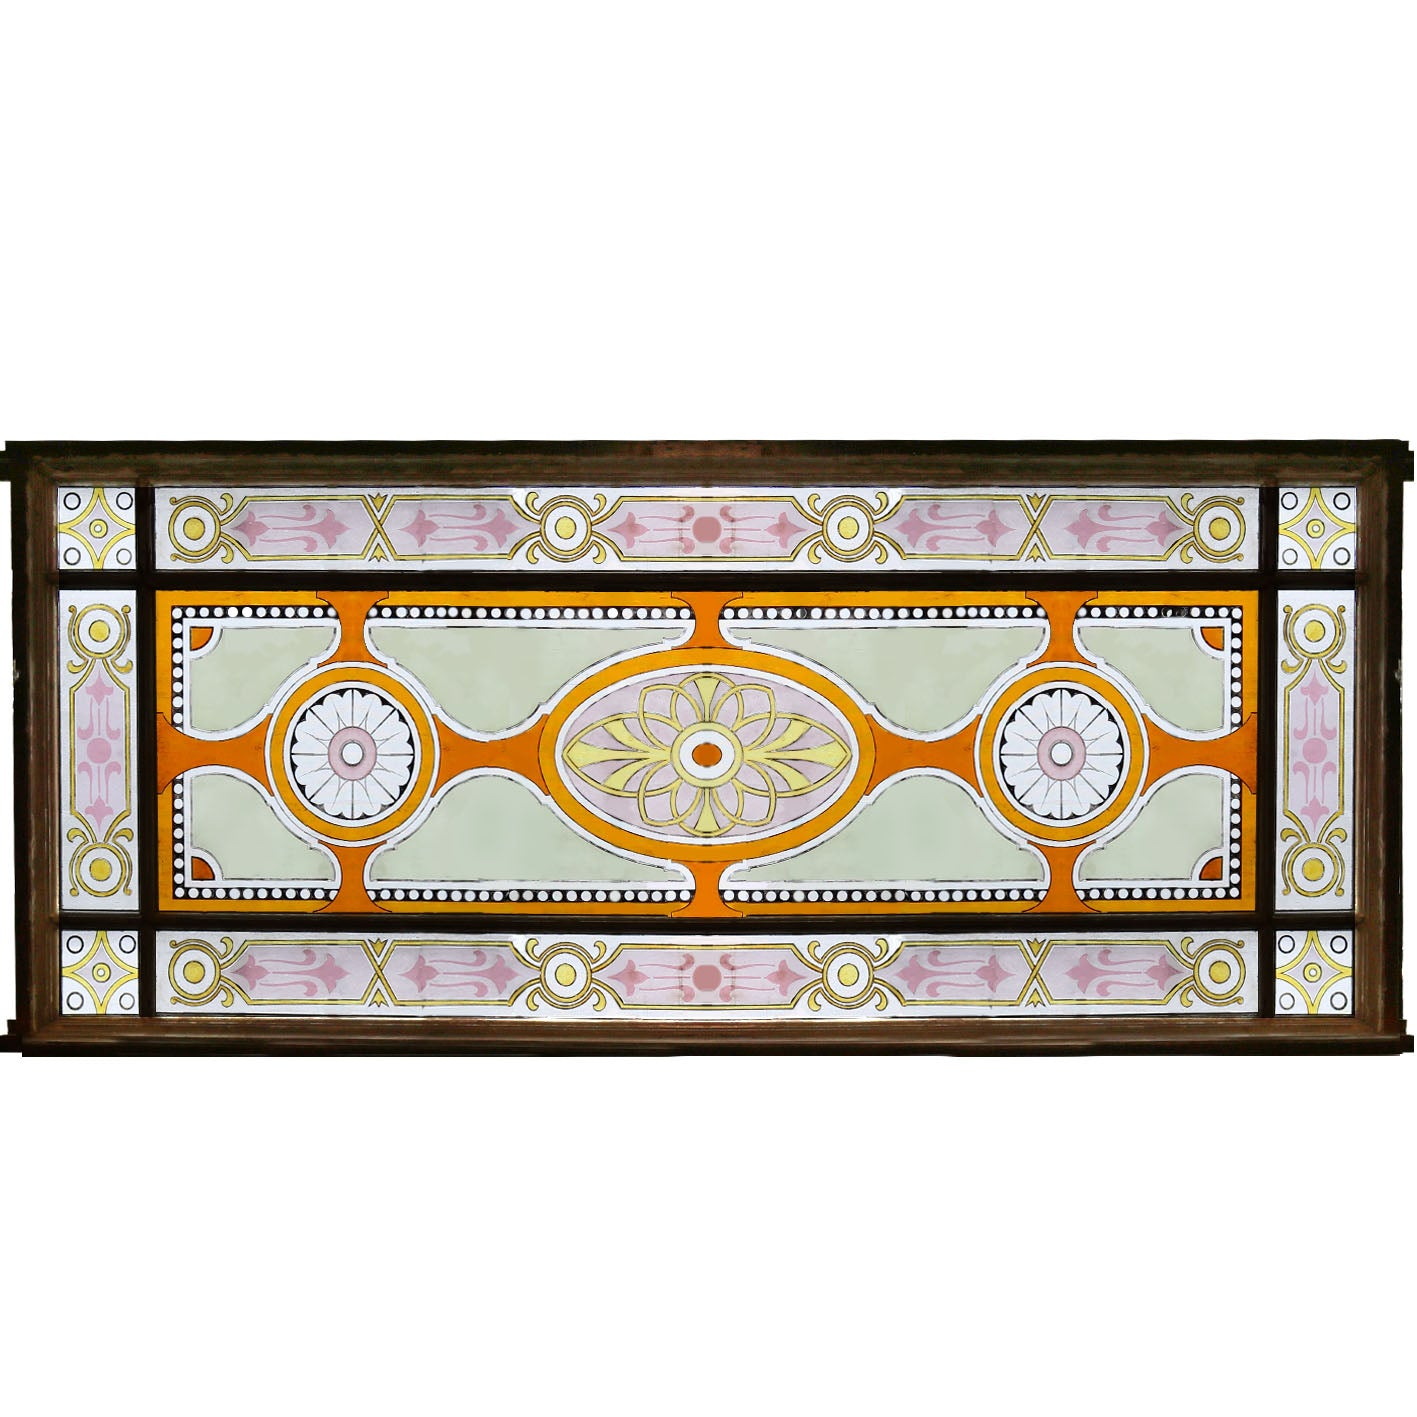 Large Victorian Stained Glass Panel - 2 Available